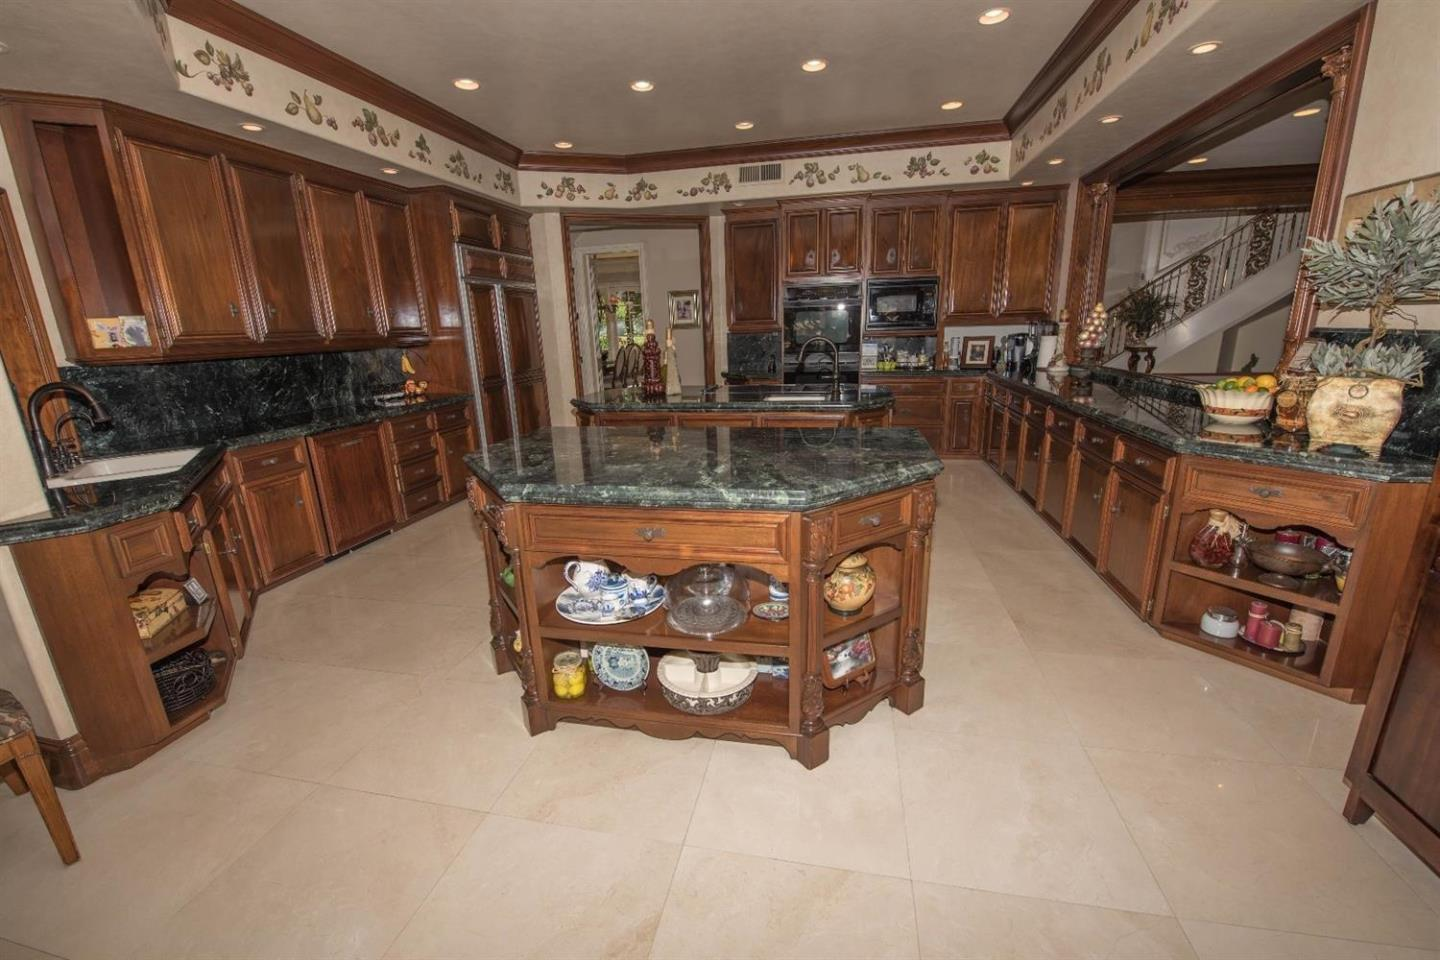 Additional photo for property listing at 2796 E Silaxo Road  Clovis, Kalifornien 93619 Vereinigte Staaten